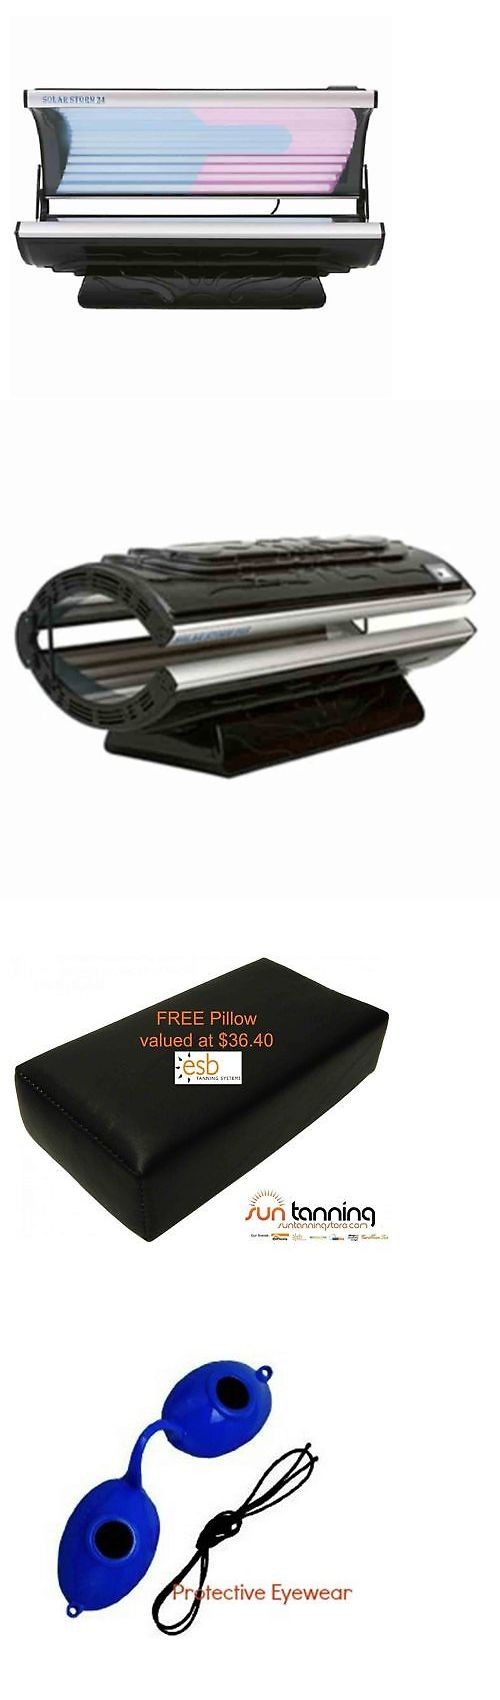 Solar Storm 24s 110v Tanning Bed With Face Tanning Free Shipping